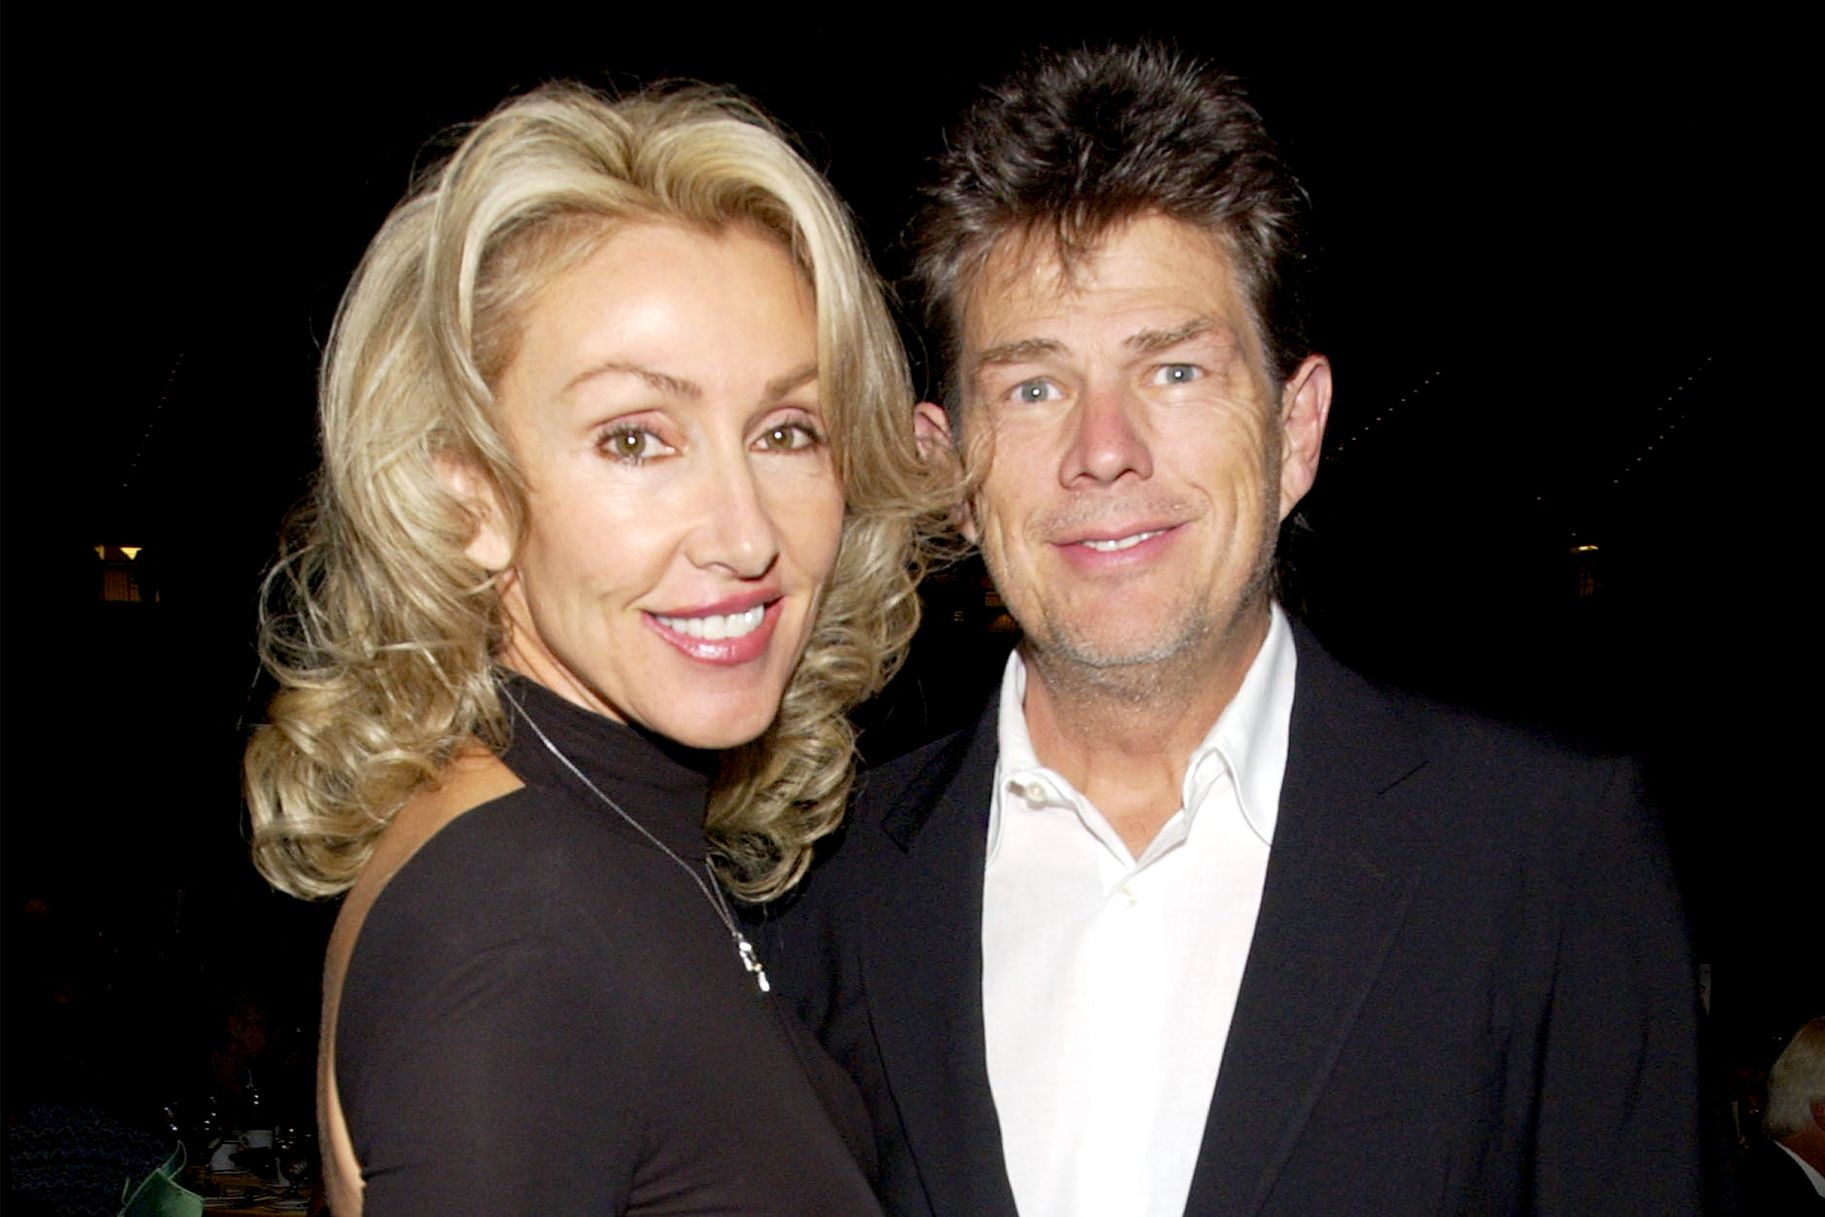 David Foster S Ex Wife Linda Thompson S New Memoir Reveals All About Her Famous Romances Linda Thompson Elvis Presley Famous